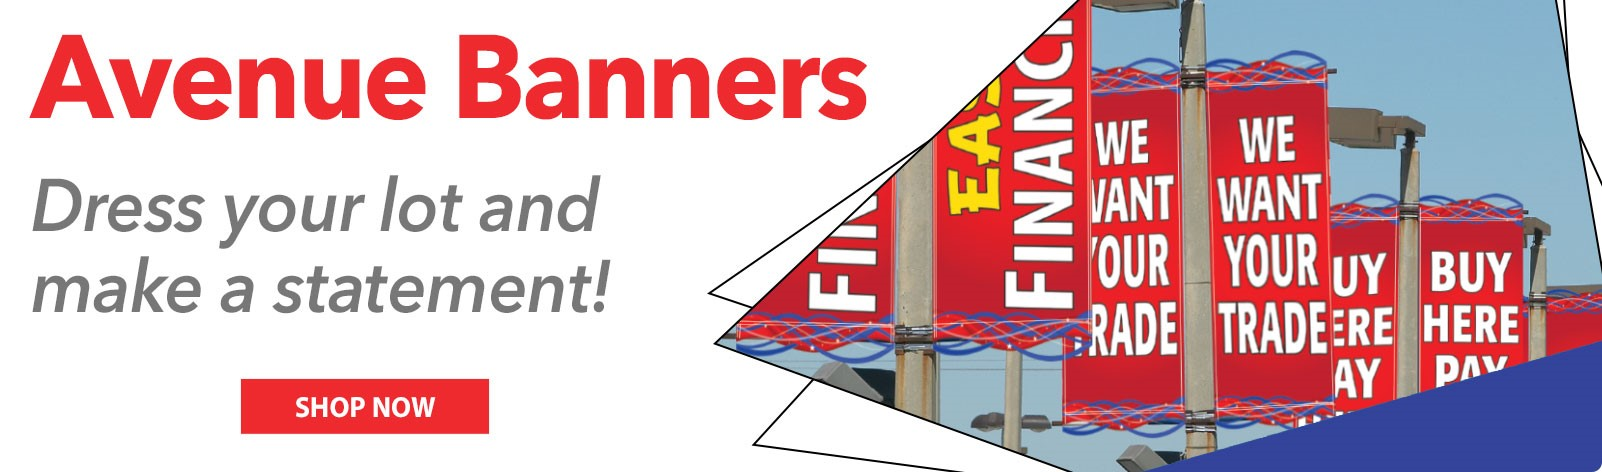 Avenue Banners - Dress your lot and make a statement!